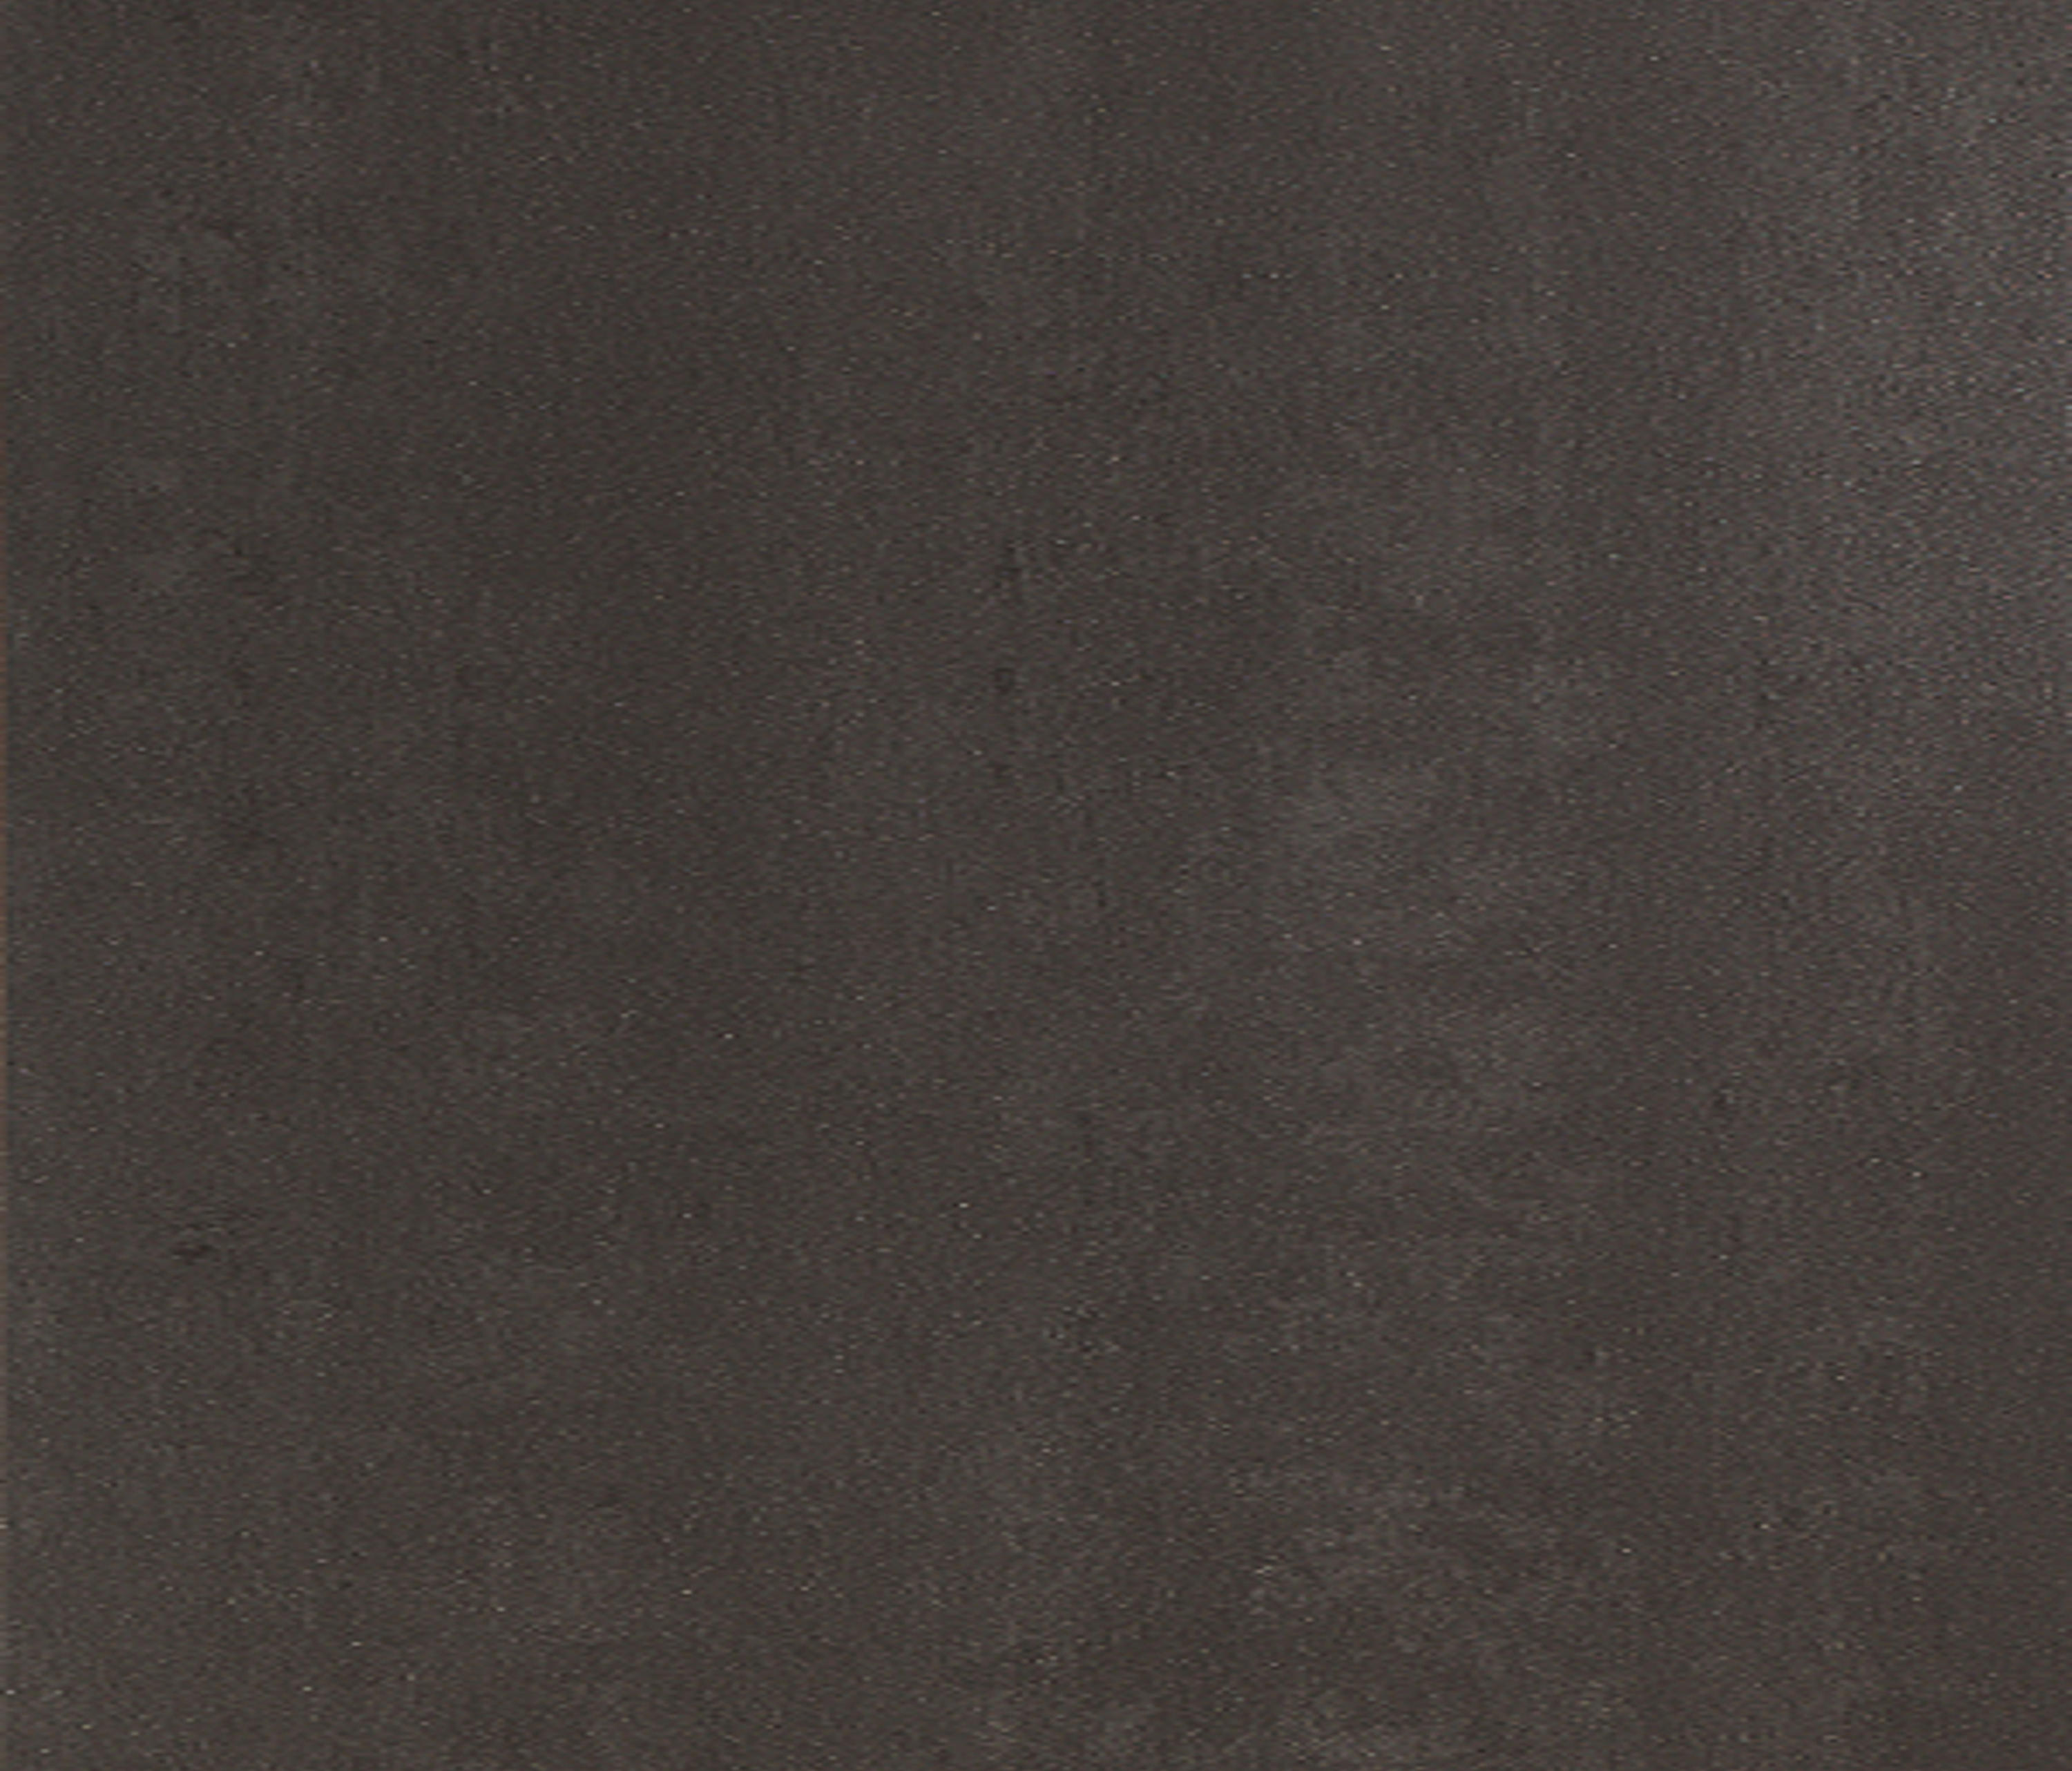 Artic black ceramic tiles from alea experience architonic artic black by alea experience ceramic tiles dailygadgetfo Image collections